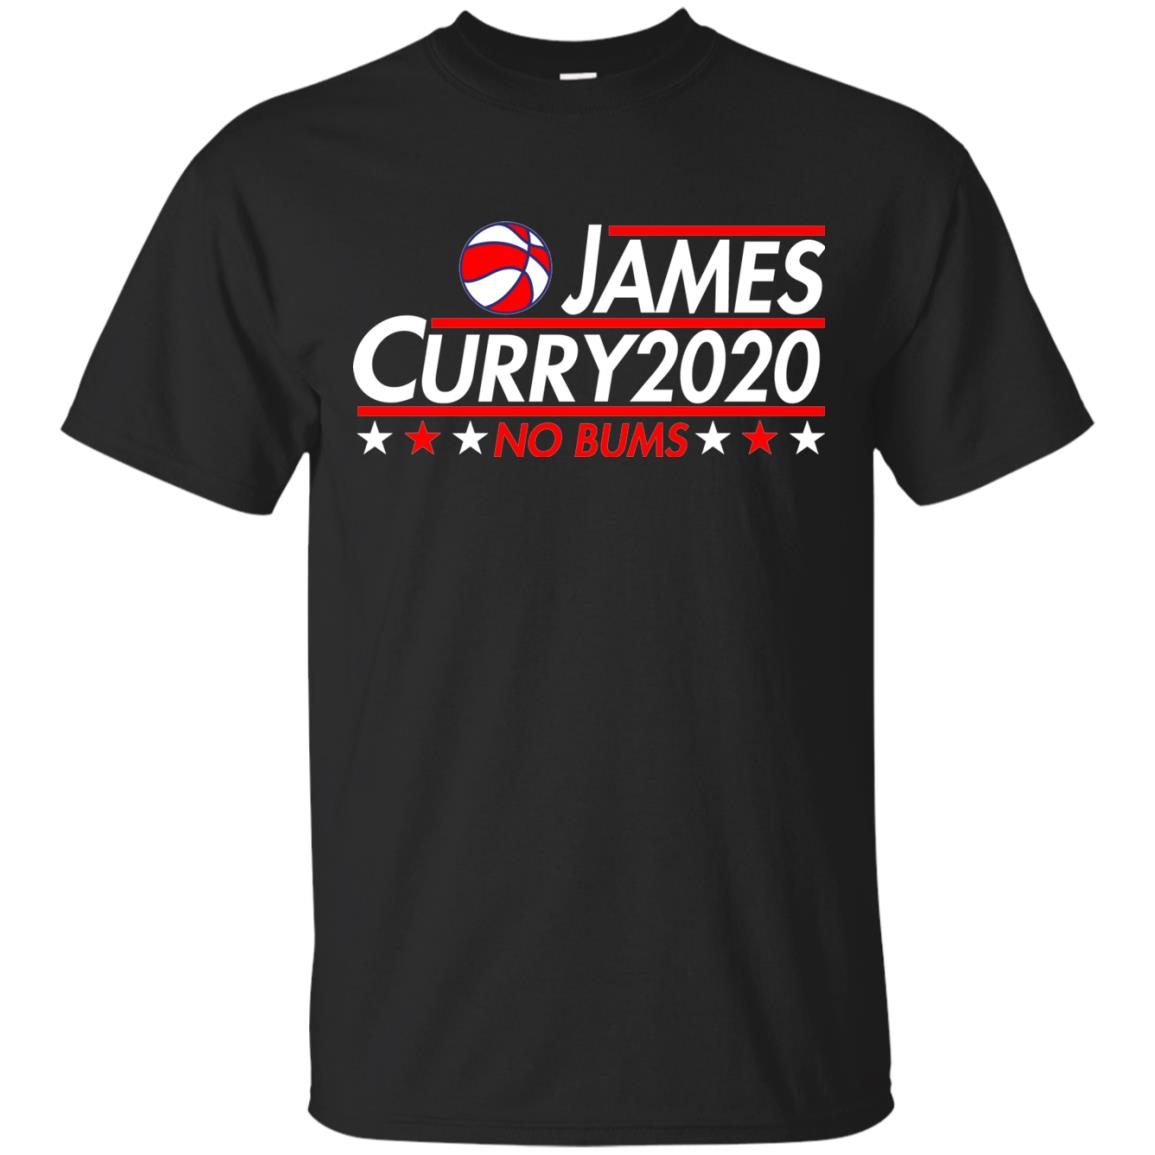 image 2165 - James Curry 2020 shirt No Bums: James & Curry for President